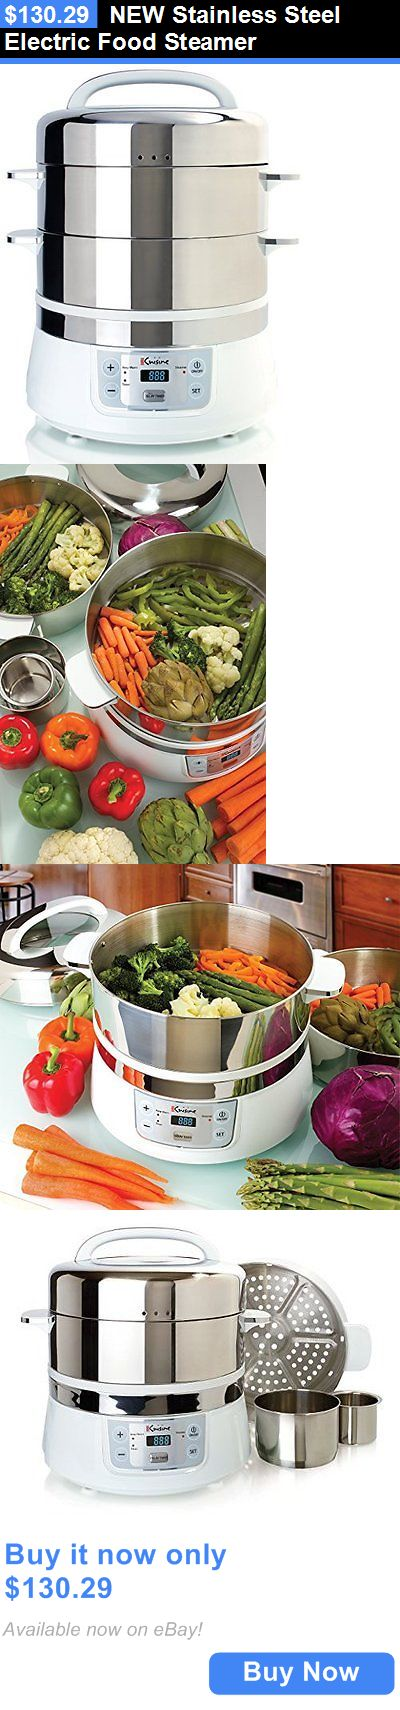 Small Kitchen Appliances: New Stainless Steel Electric Food Steamer BUY IT NOW ONLY: $130.29